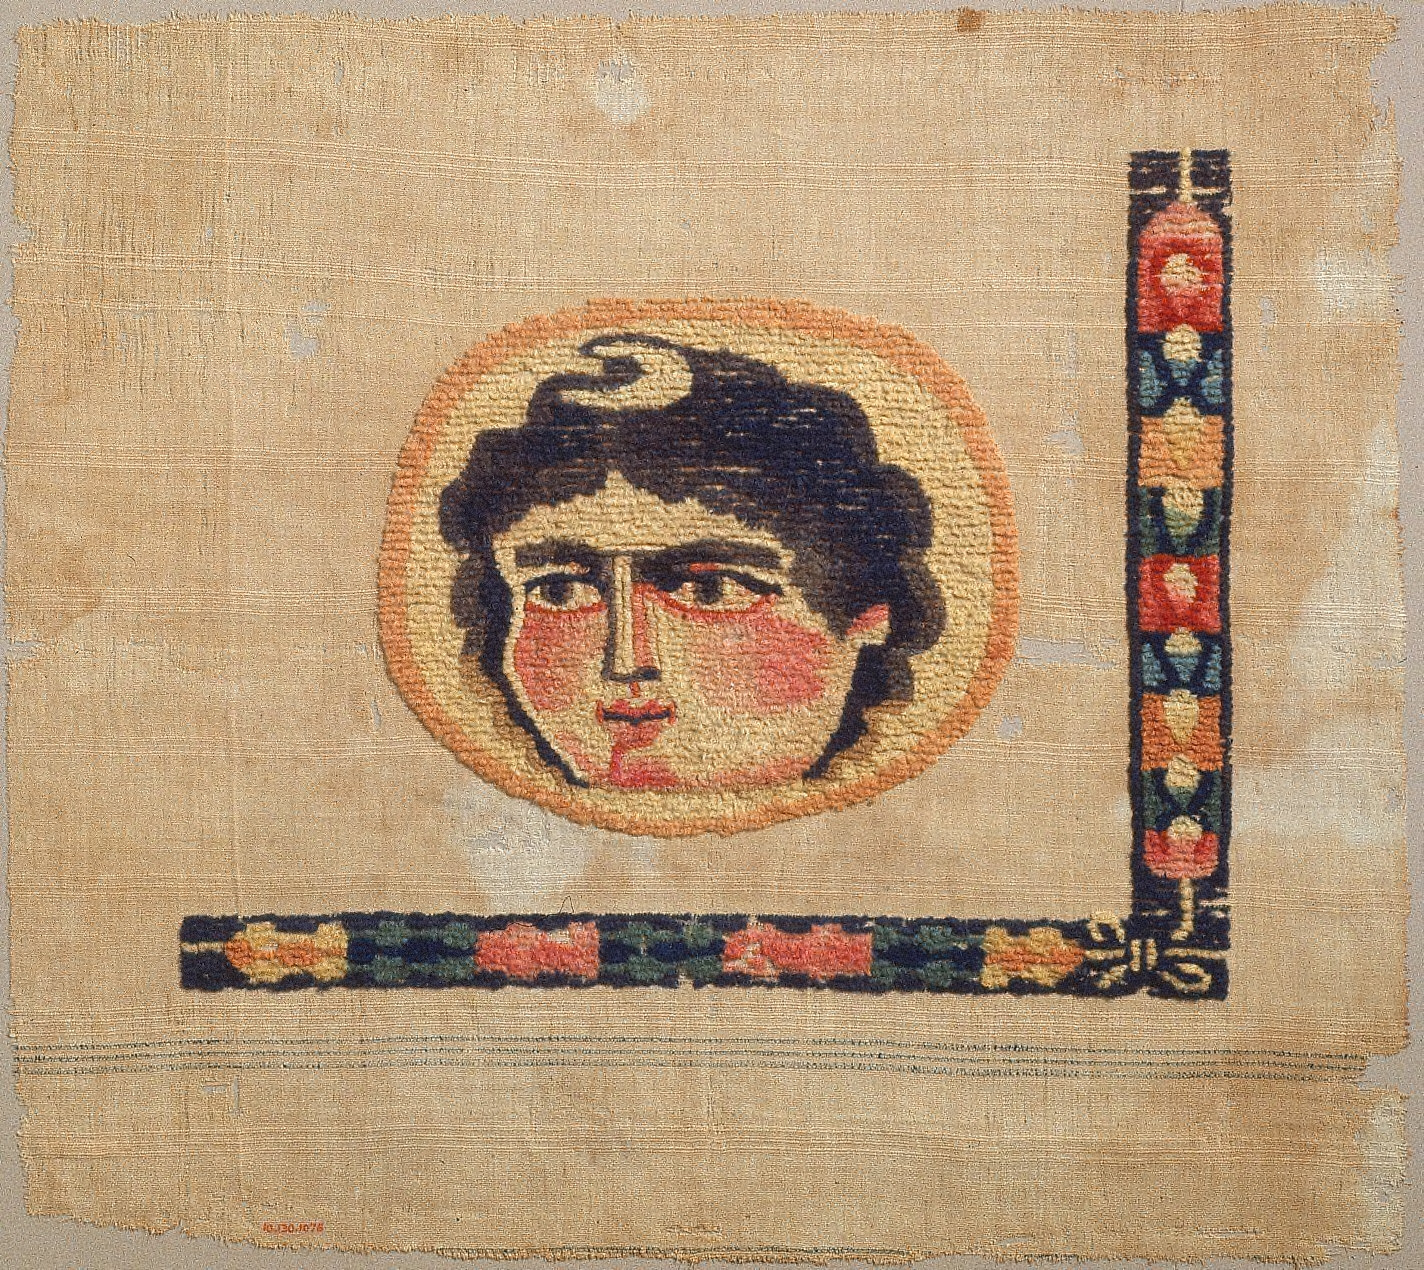 [Fragment, Personification of Luna, the Moon, or Head of Diana, Goddess of the Hunt]